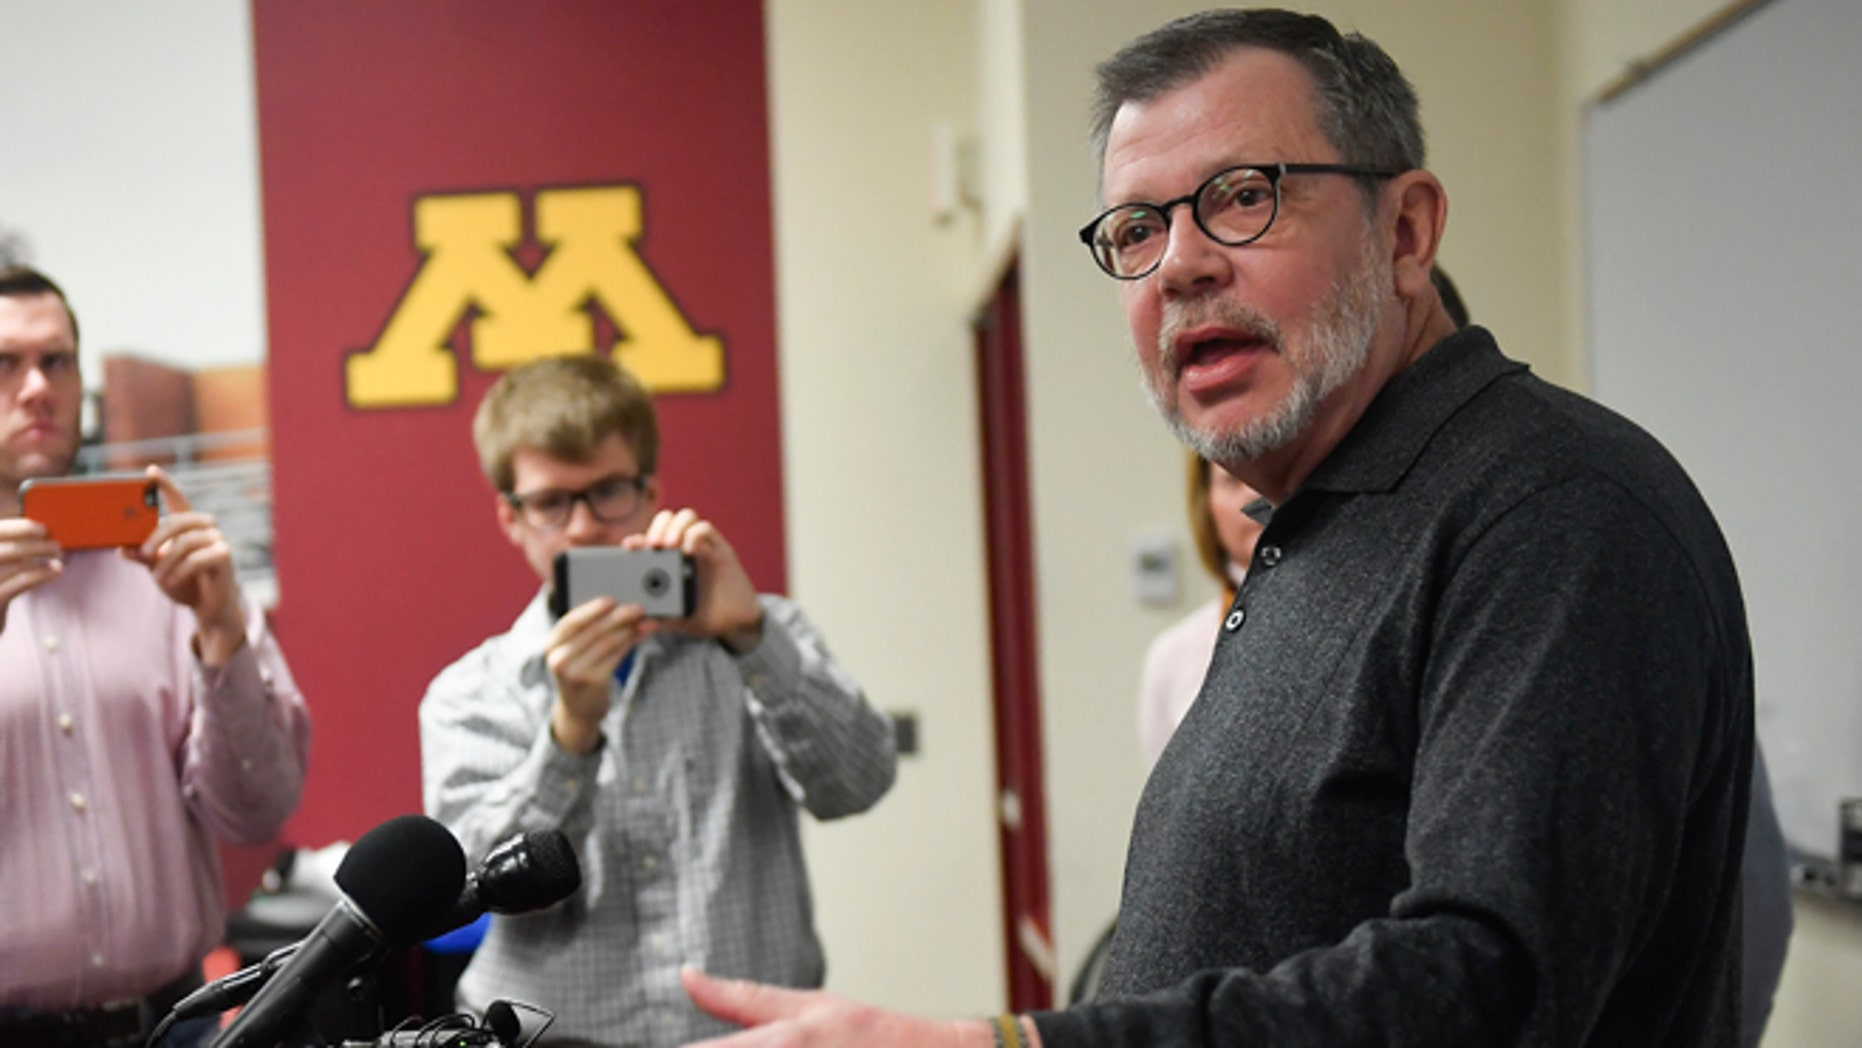 University of Minnesota President Eric Kaler speaks to members of the media Saturday, Dec. 17, 2016.